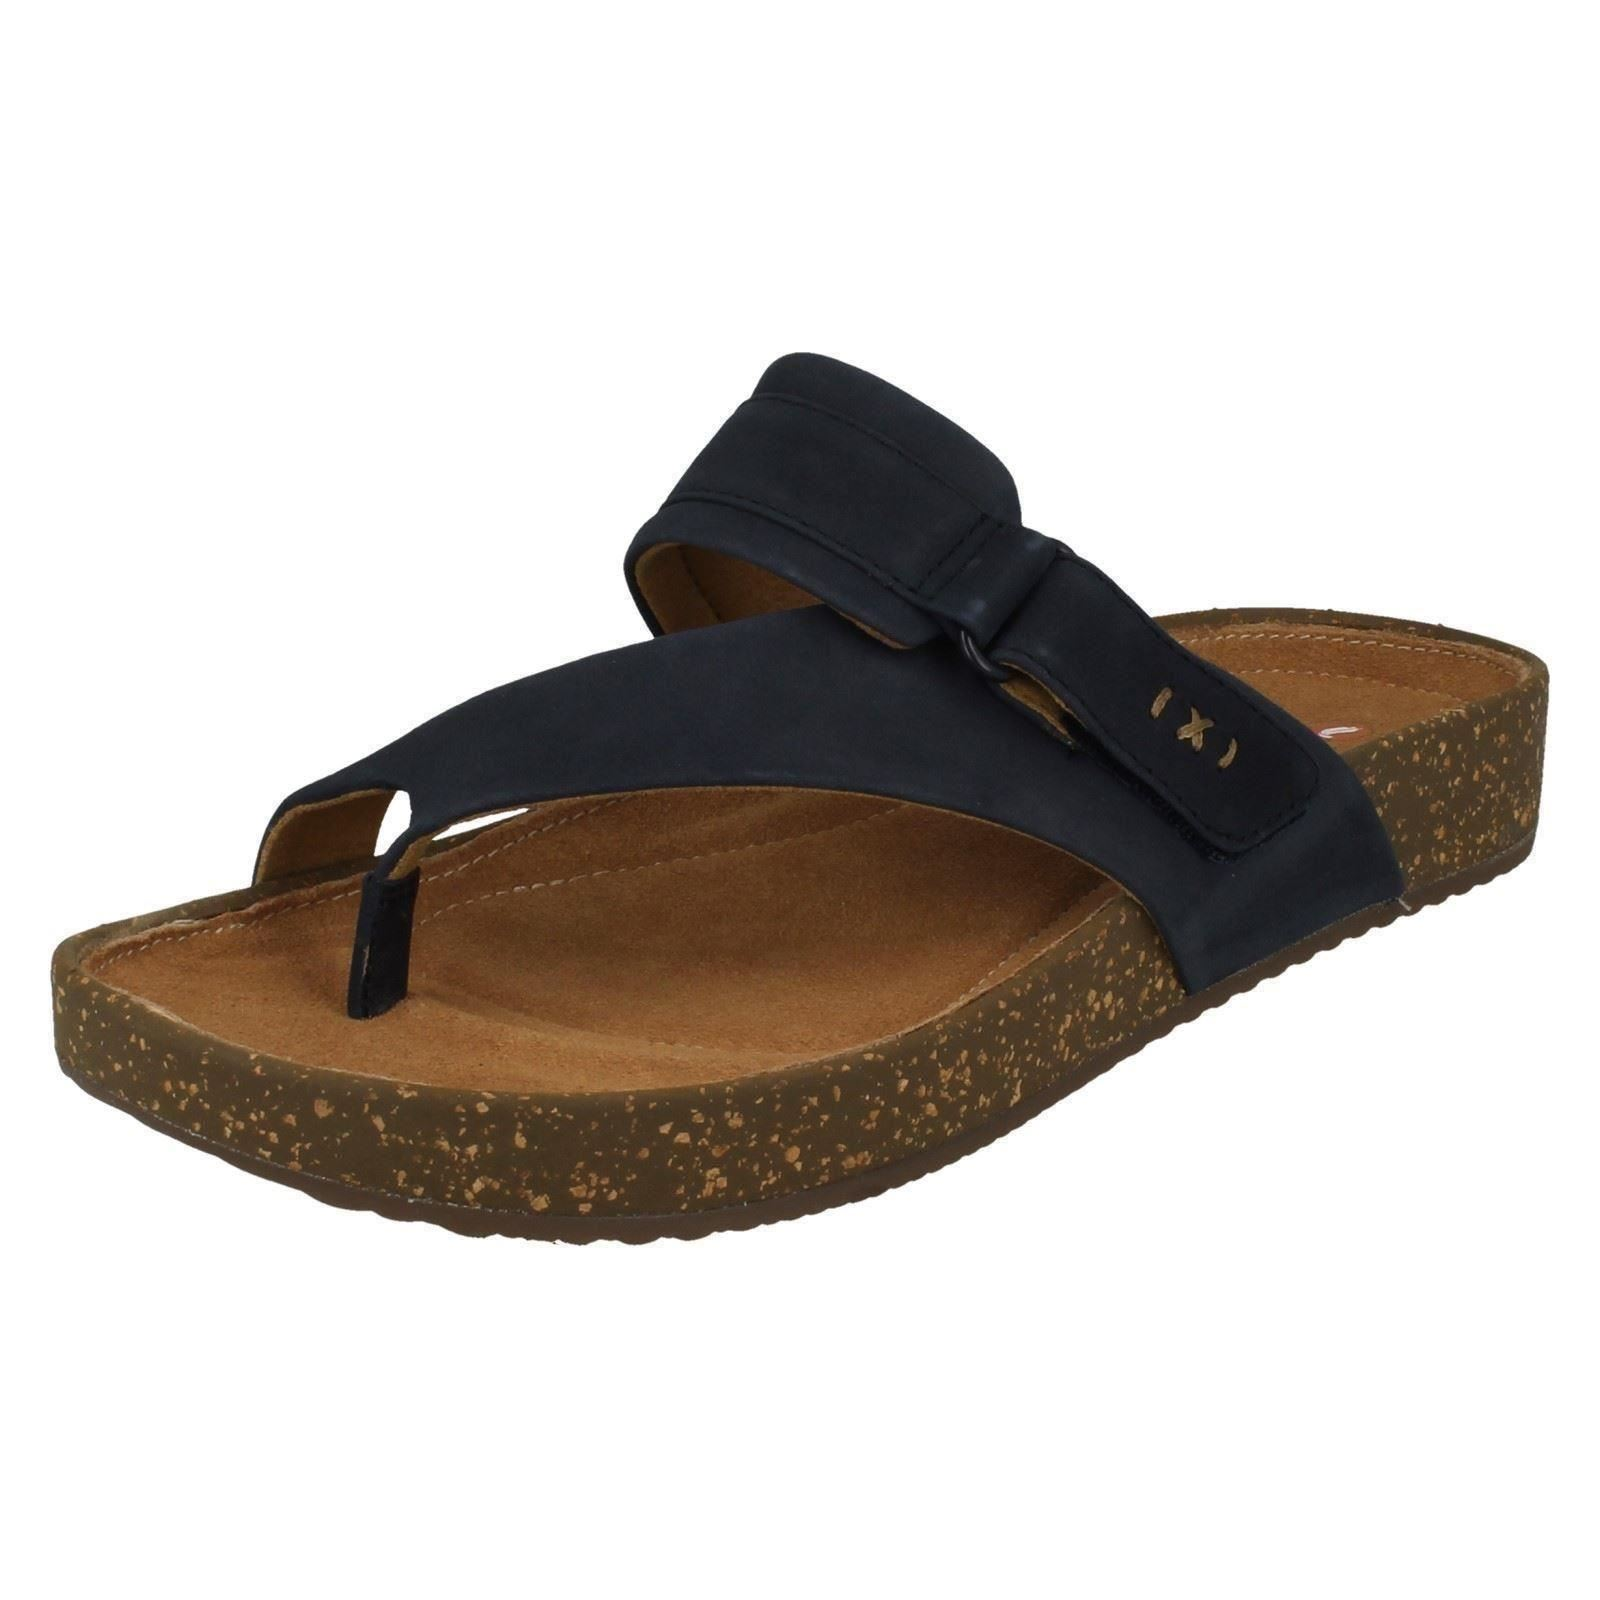 3582ccb18 Ladies Unstructured by Clarks Toe Post Mule Sandals The Style - Rosilla  Durham  Picture 2 of 7 ...